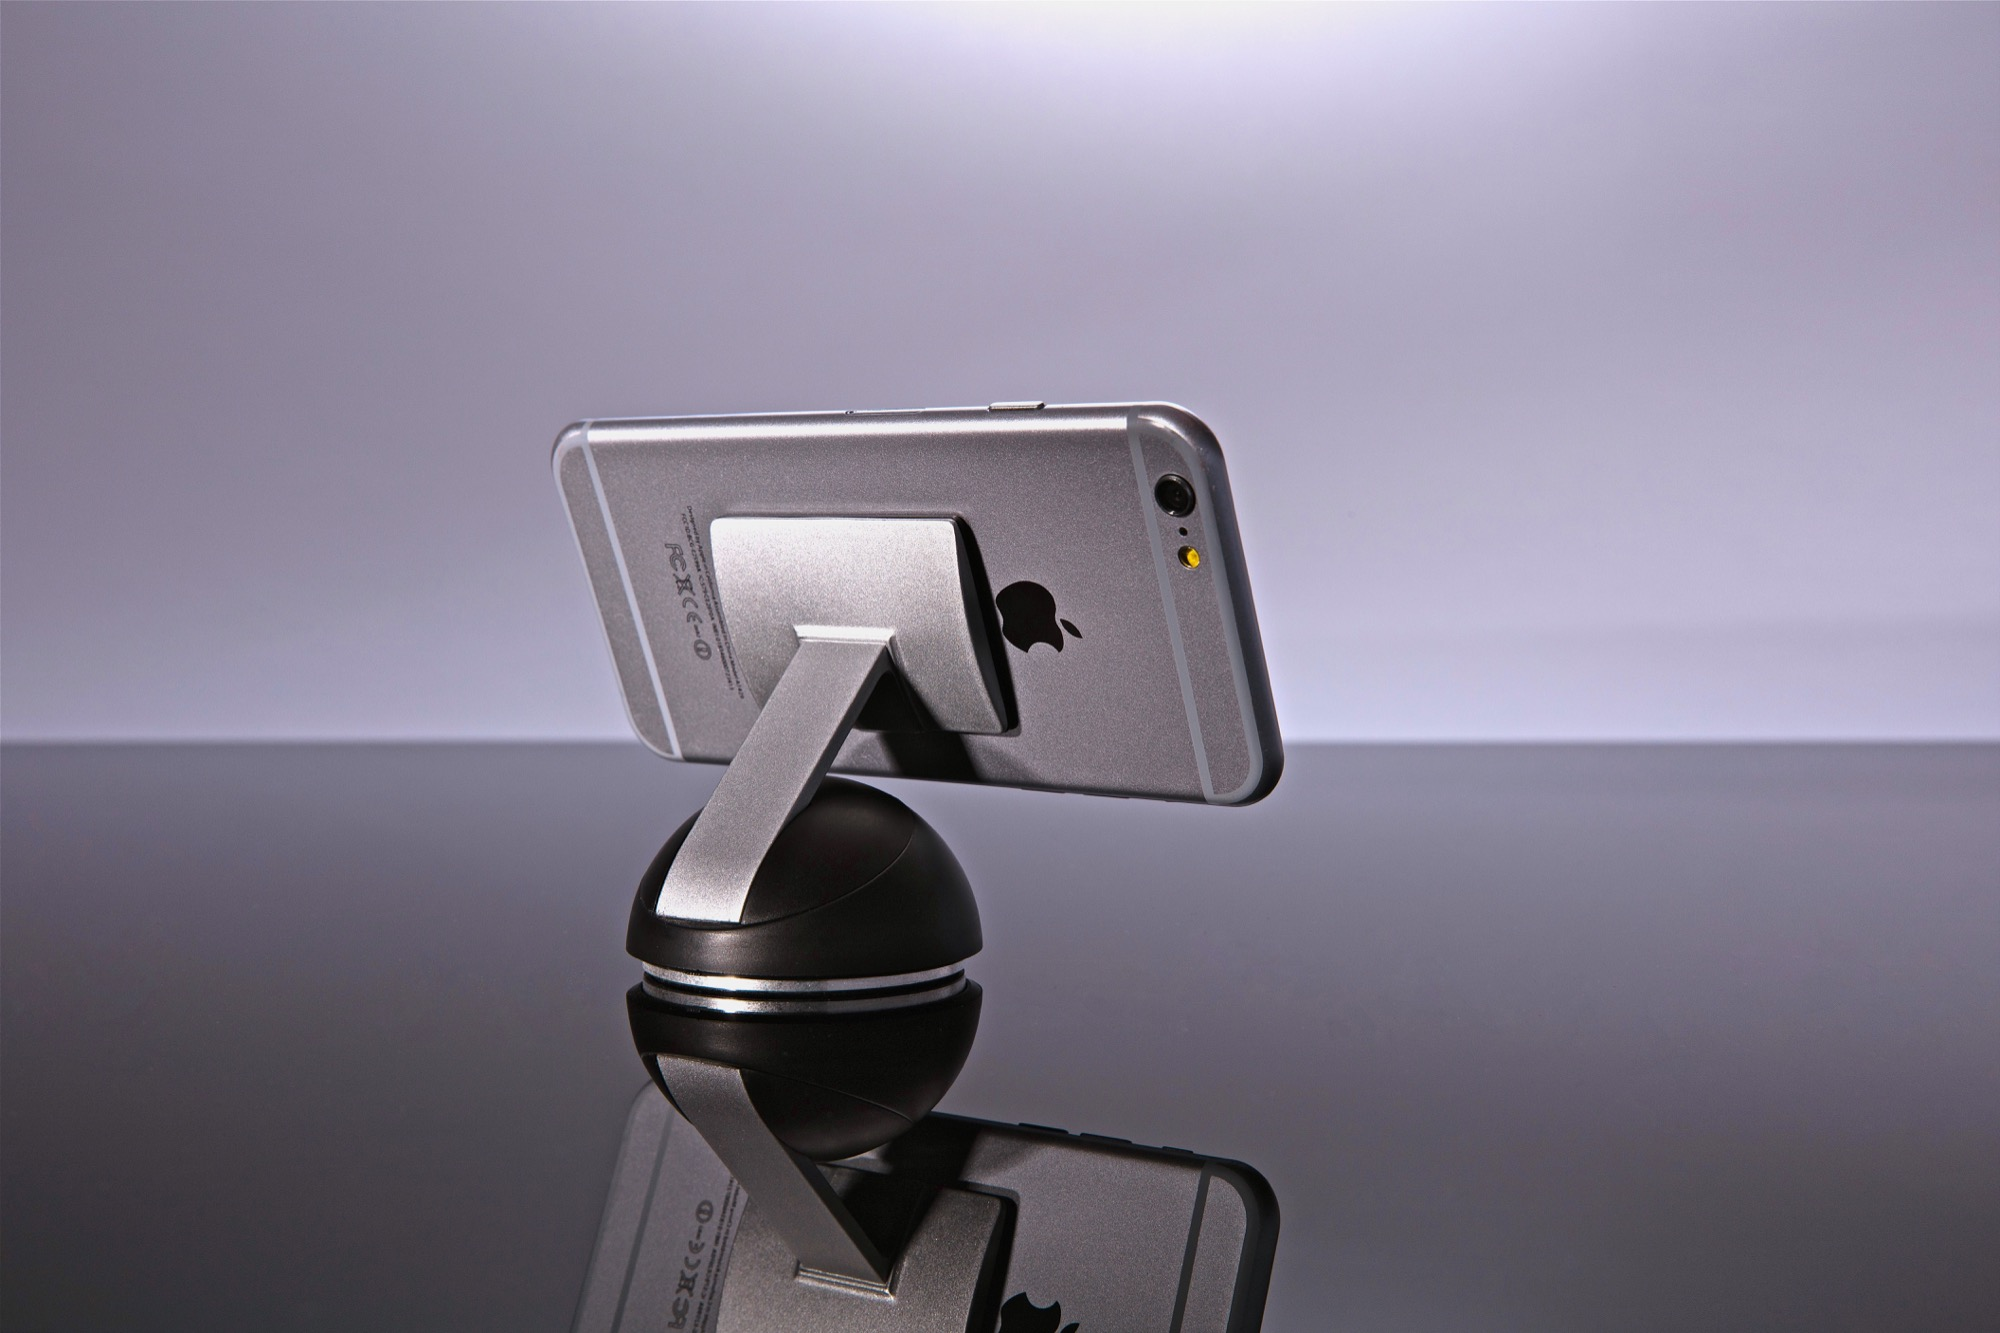 S1 360° Swivel Mount - MicroSuction Phone Dock